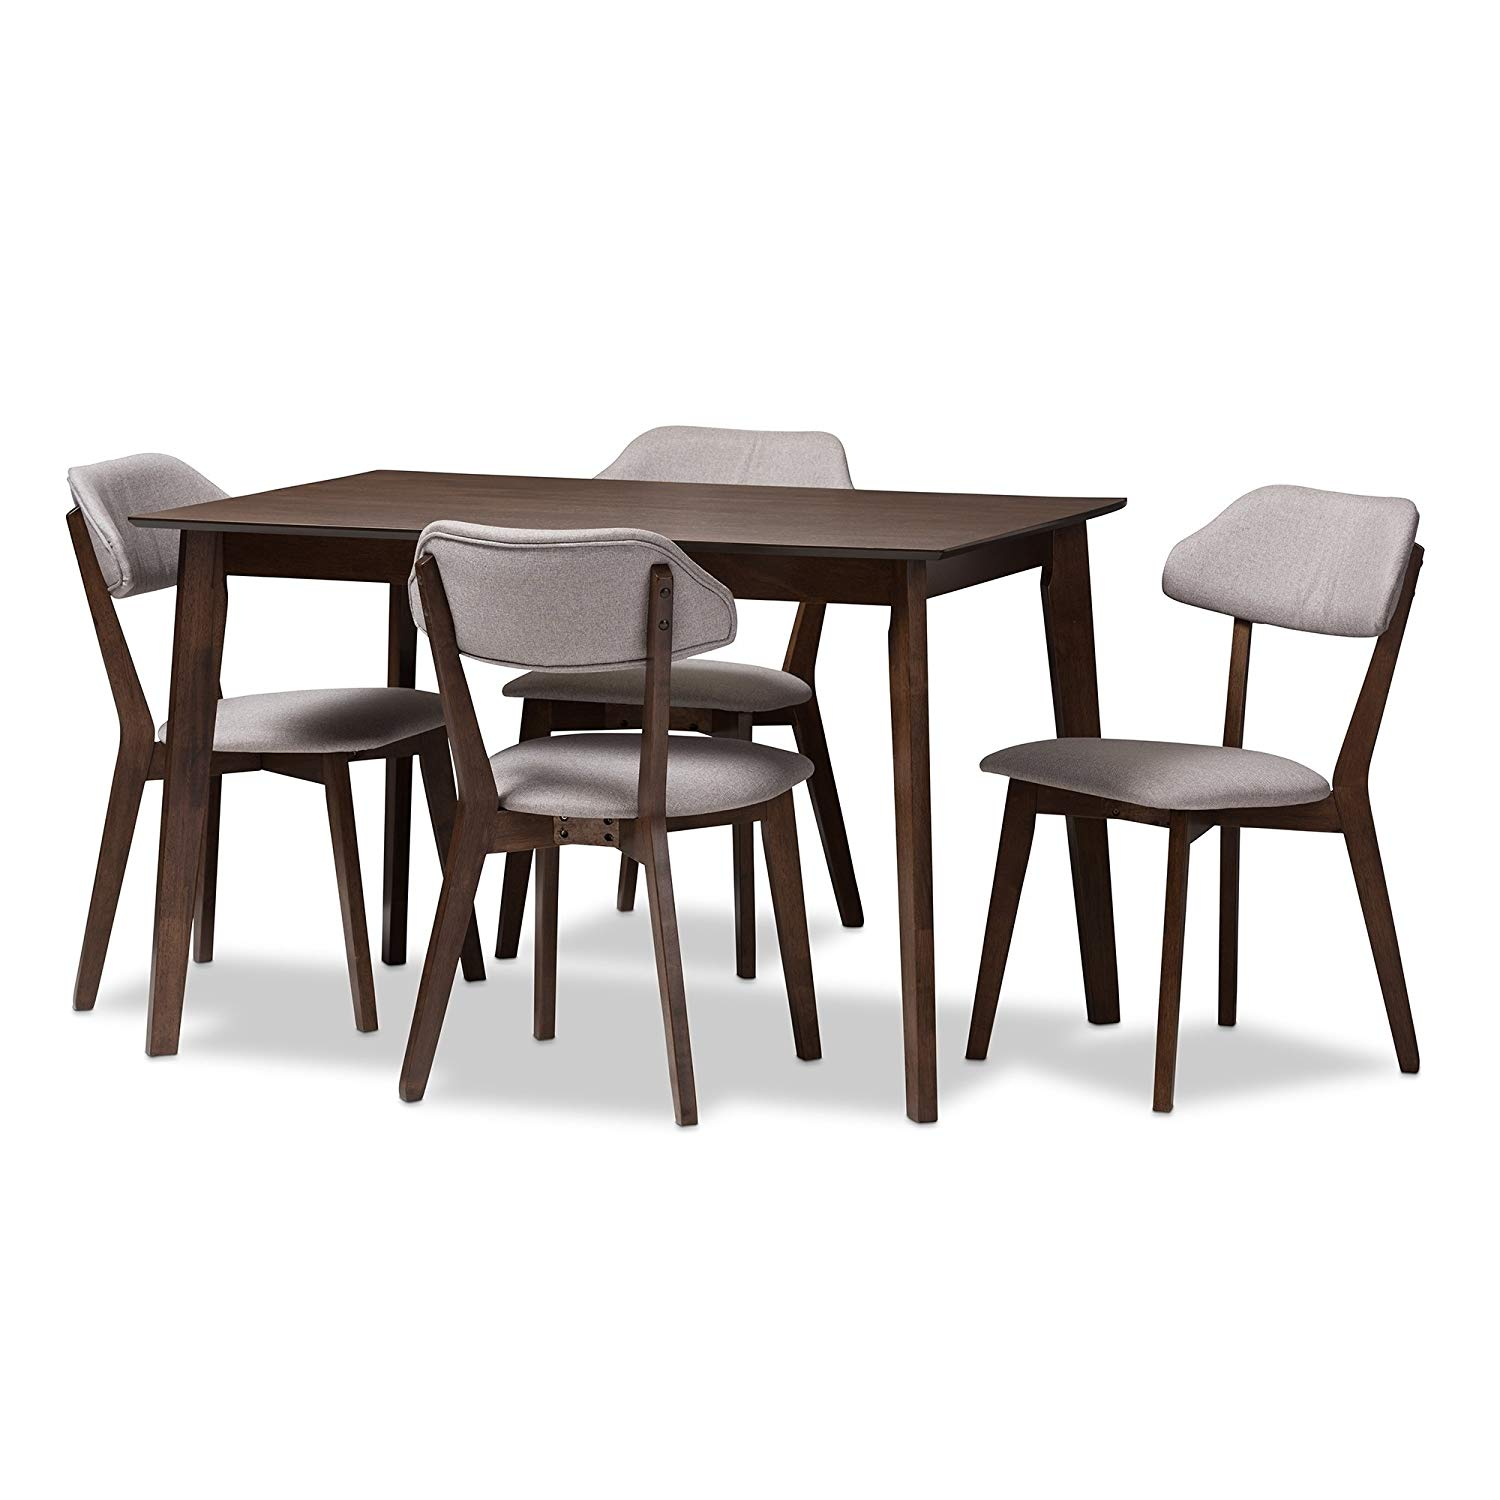 Svitlife Mid-century 5-Piece Dining Set 5 Piece Set Dining Mid Century Modern Table Chairs Style Midcentury Troy